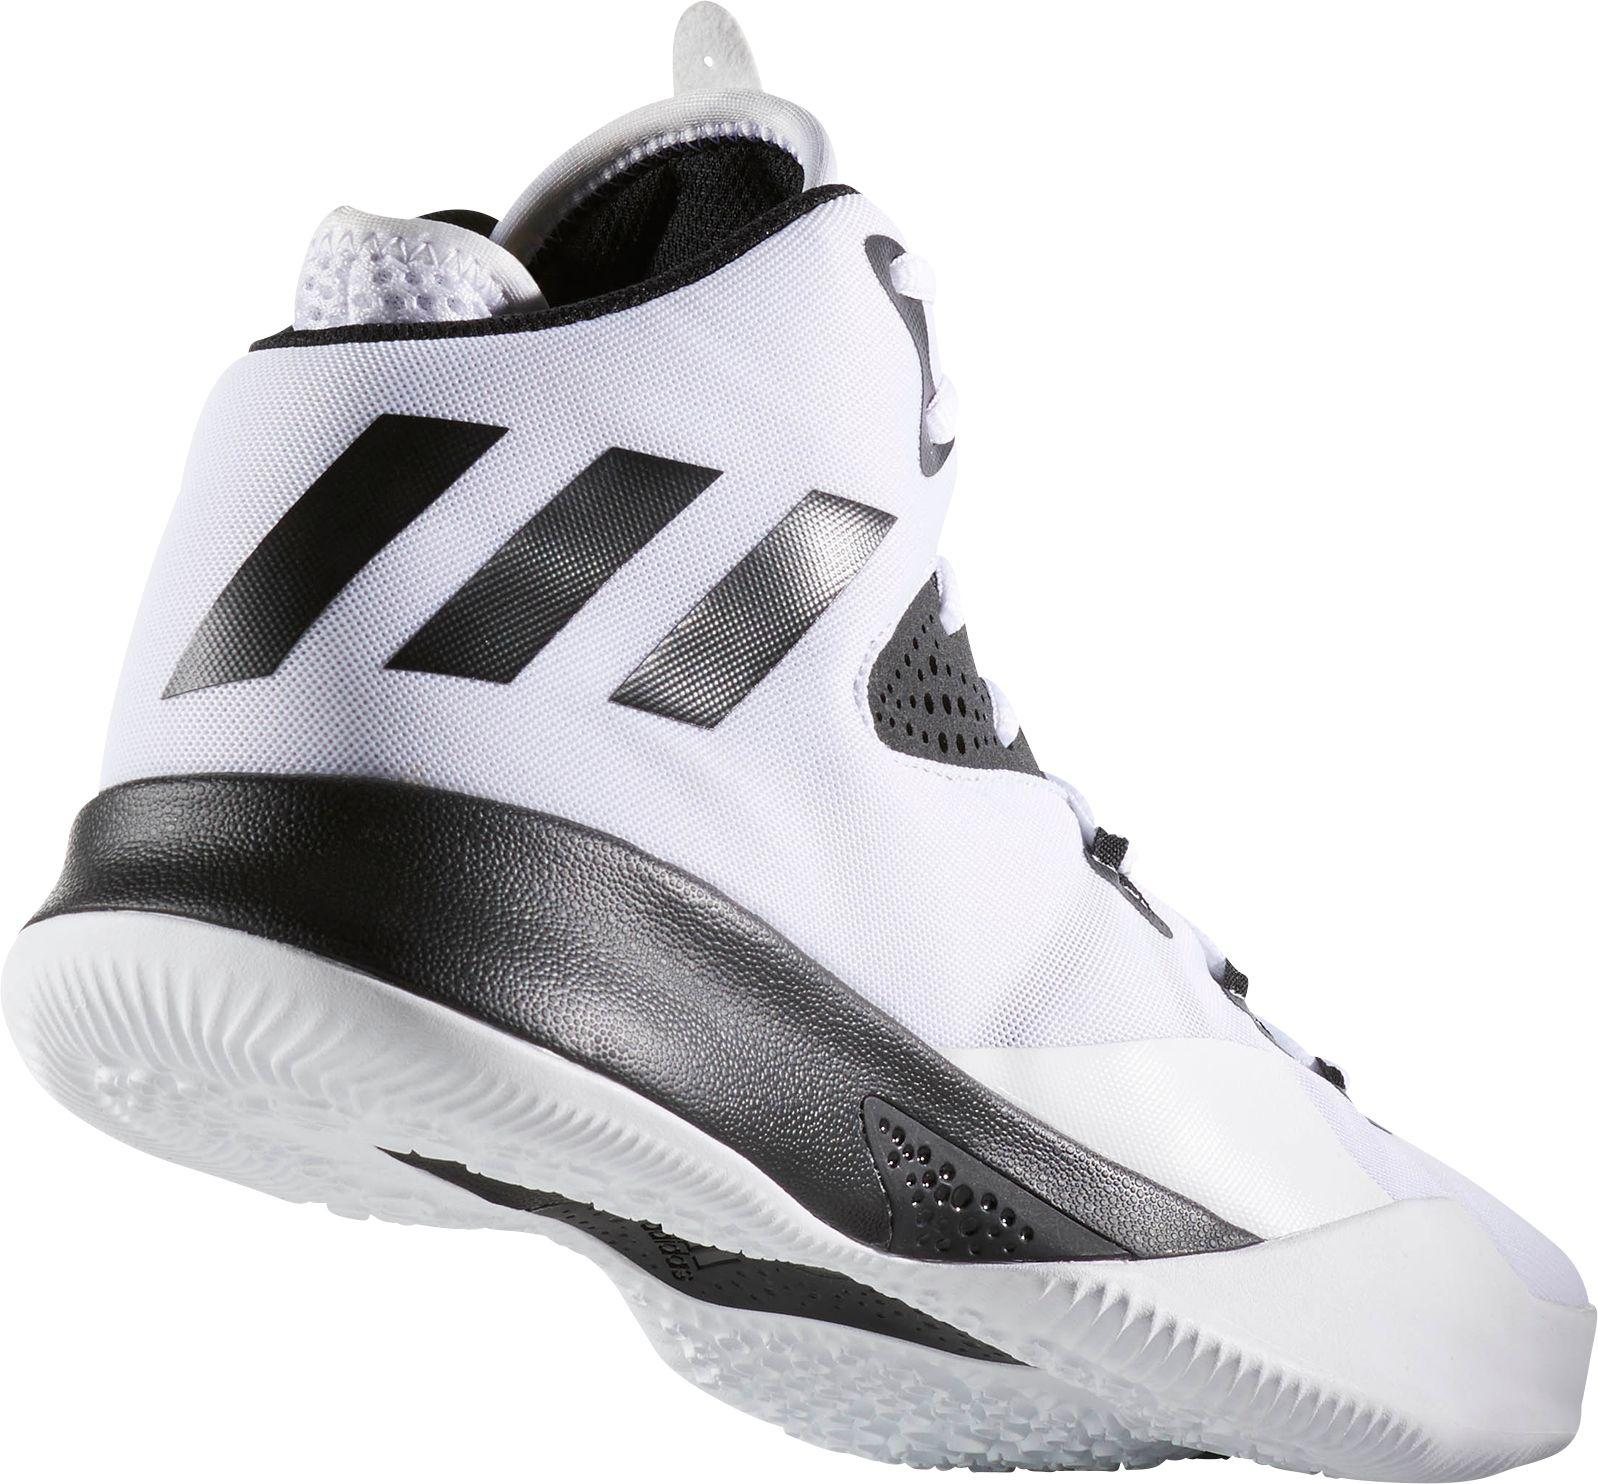 1e64029456bd Adidas - Multicolor Dual Threat 2017 Basketball Shoes for Men - Lyst